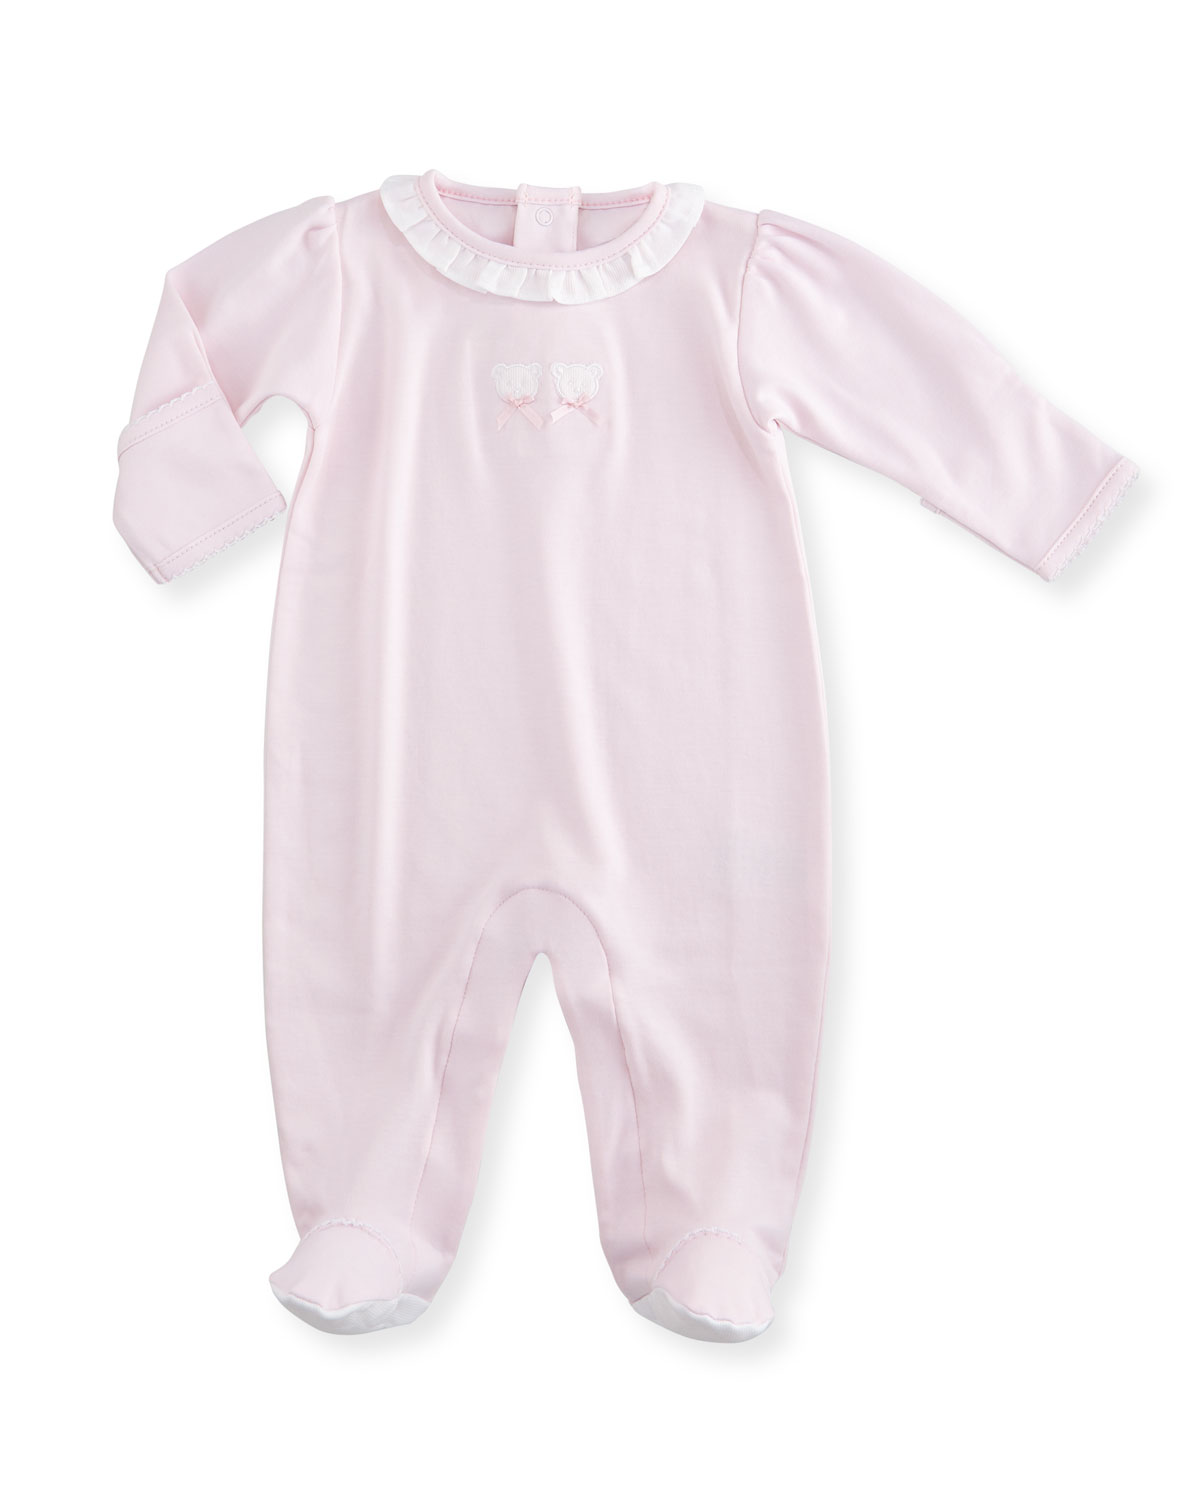 Kissy Kissy Pique Bears Pima Collared Footie Pajamas, Pink, Size Newborn-6 Months, Size: 3-6 Months